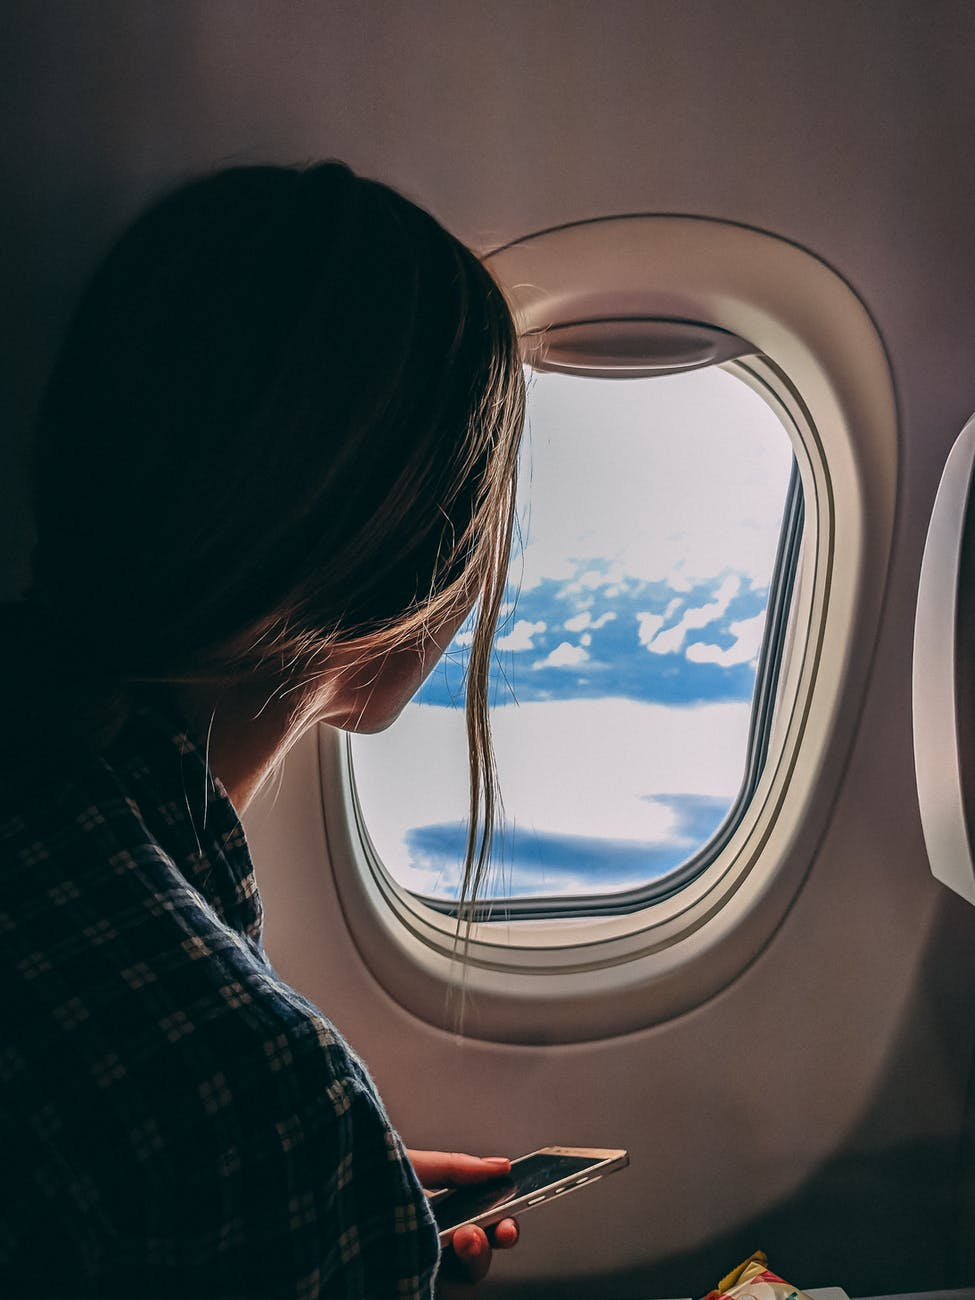 A woman looking out the window in an airplane